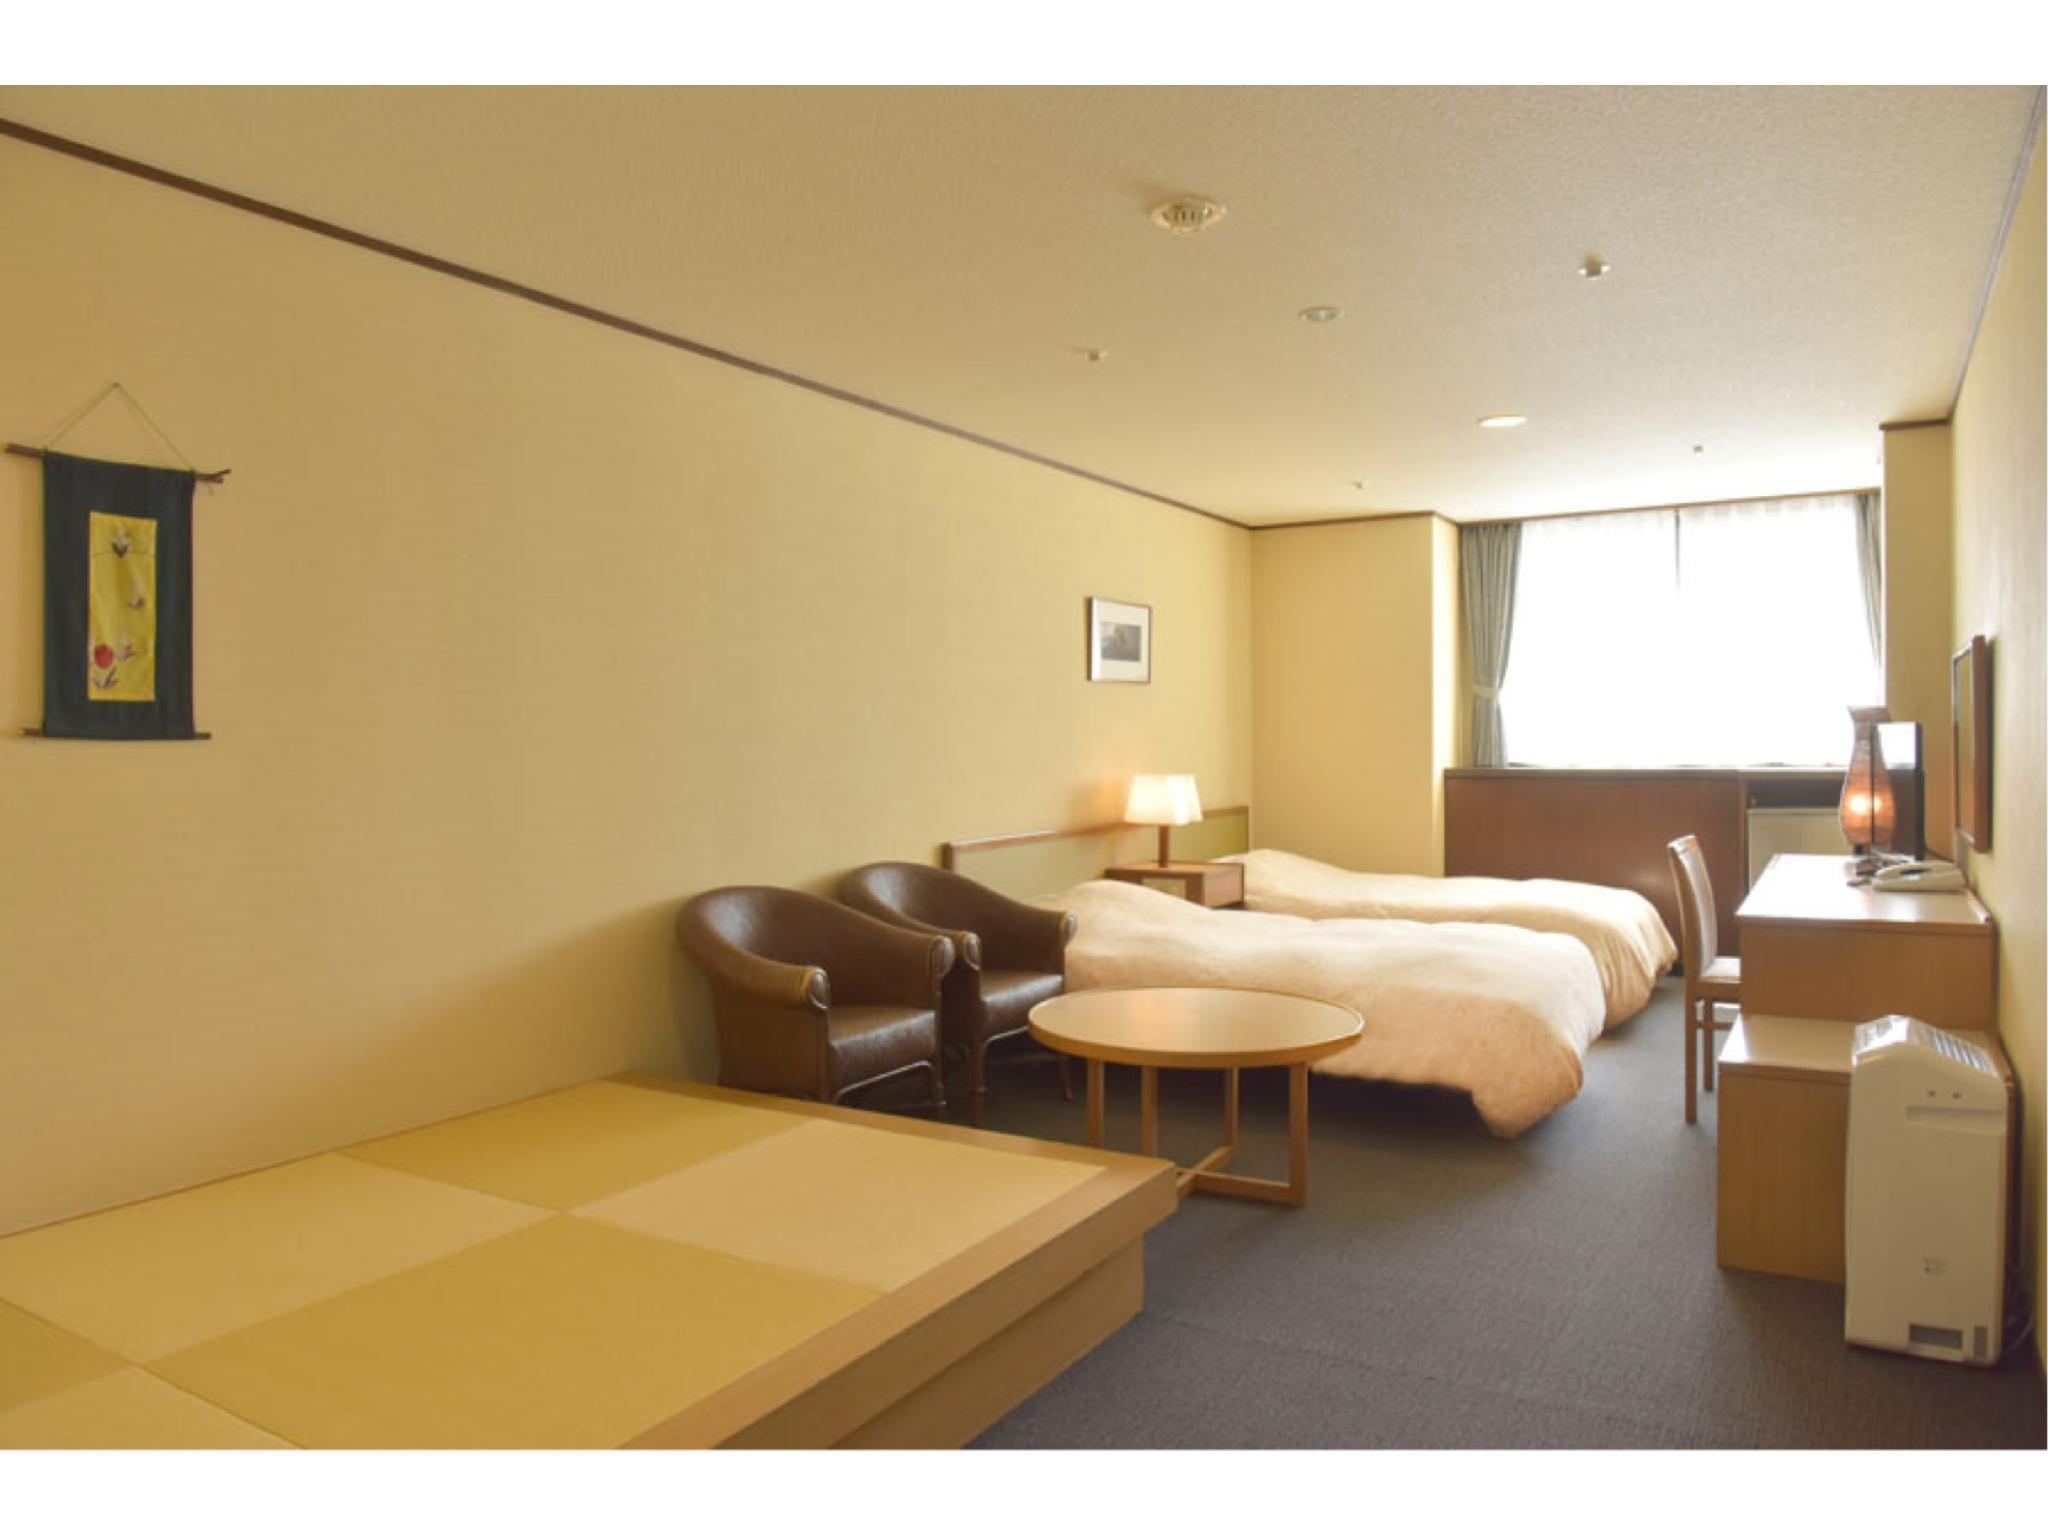 다다미 침대 객실(트윈베드) (Japanese Western Style Room with Twin Bed)